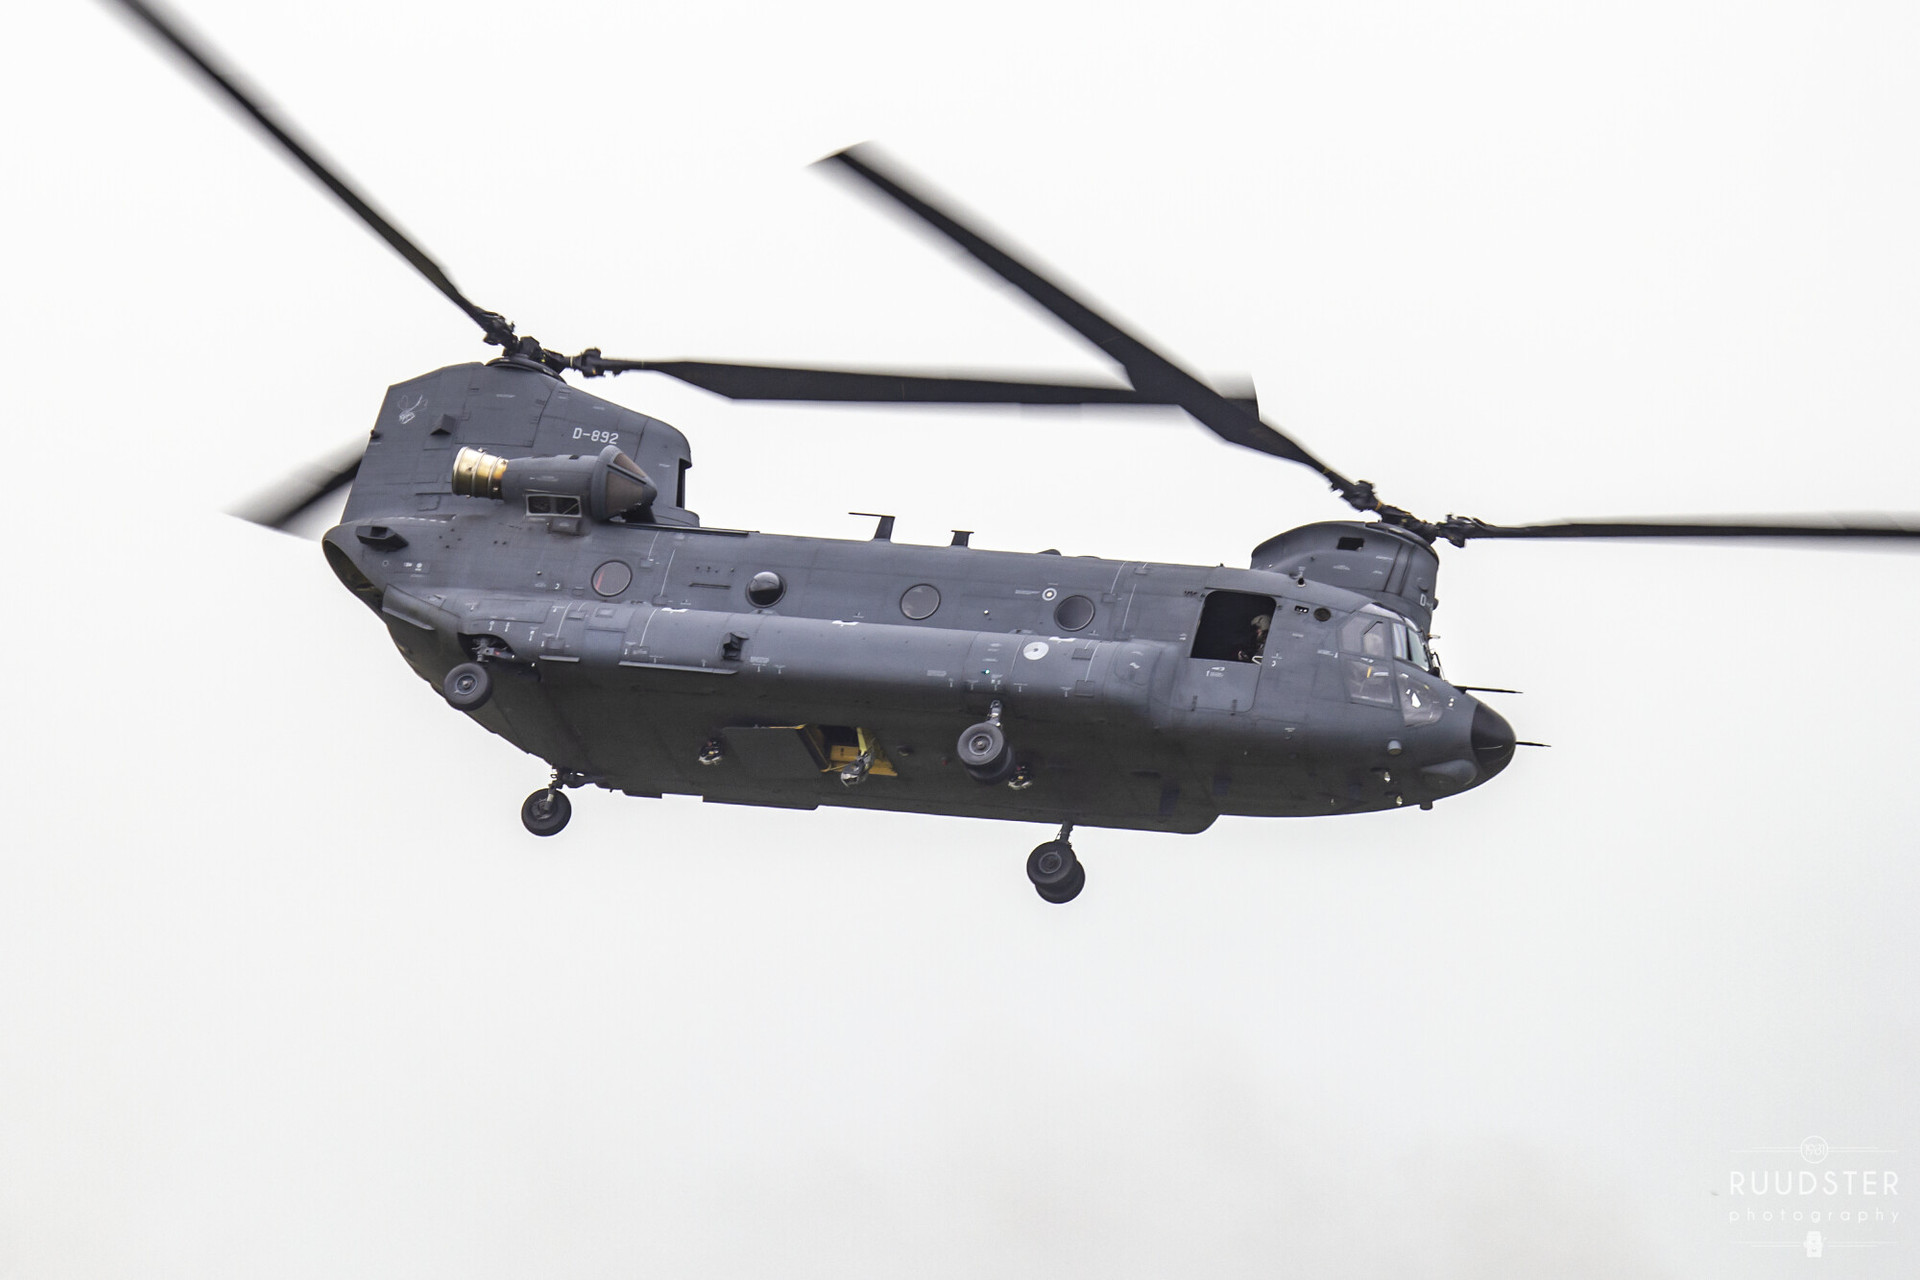 D-892   Build: 2012 - Boeing CH-47 Chinook